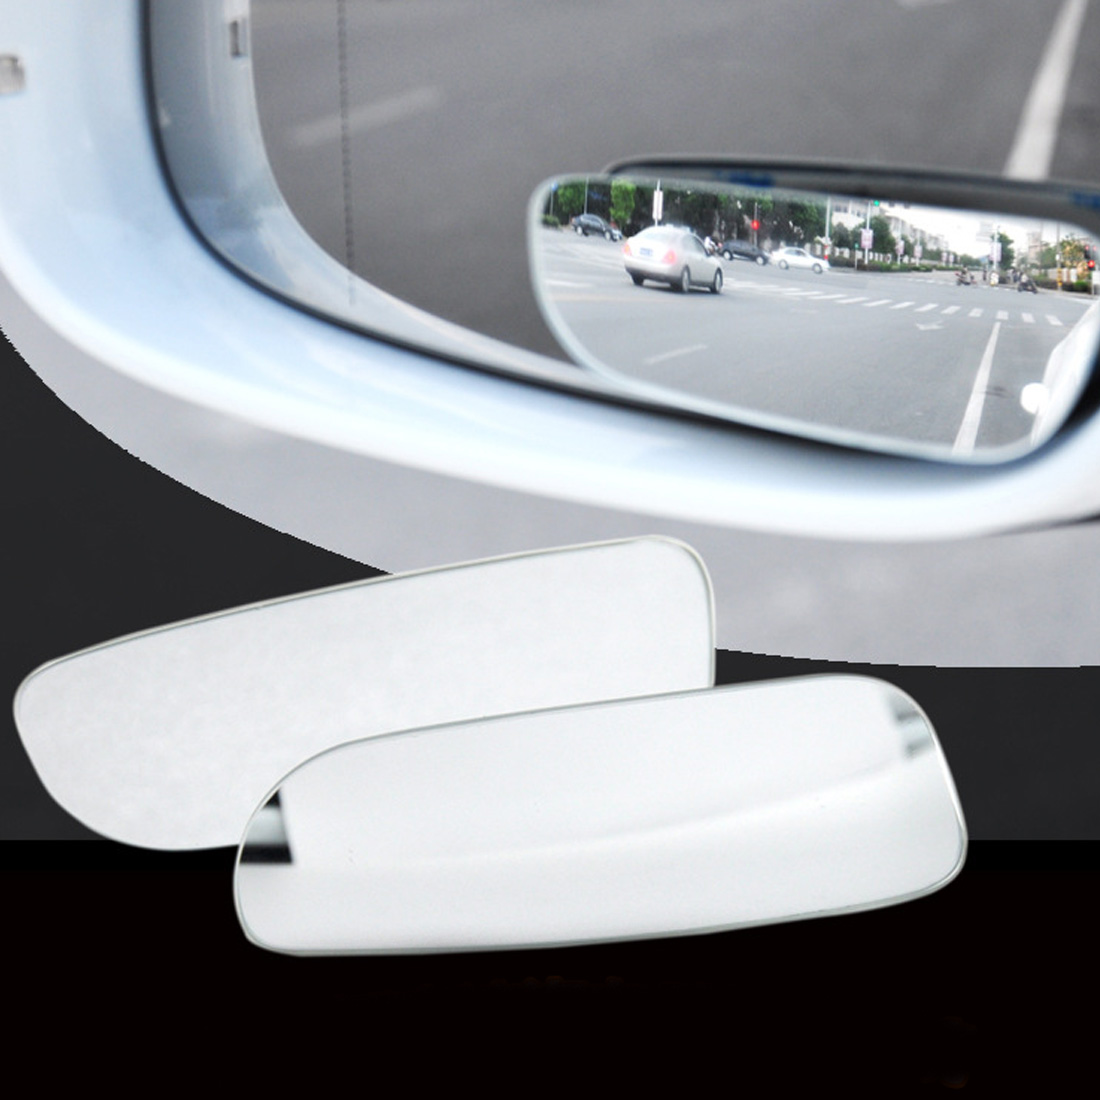 Dewtreetali 2Pcs Car 360 Degree Wide Angle Convex Blind Spot Mirror Parking Auto Motorcycle Rear View Adjustable Mirror 2 in 1 car blind spot mirror wide angle mirror 360 rotation adjustable convex rear view mirror view front wheel car mirror